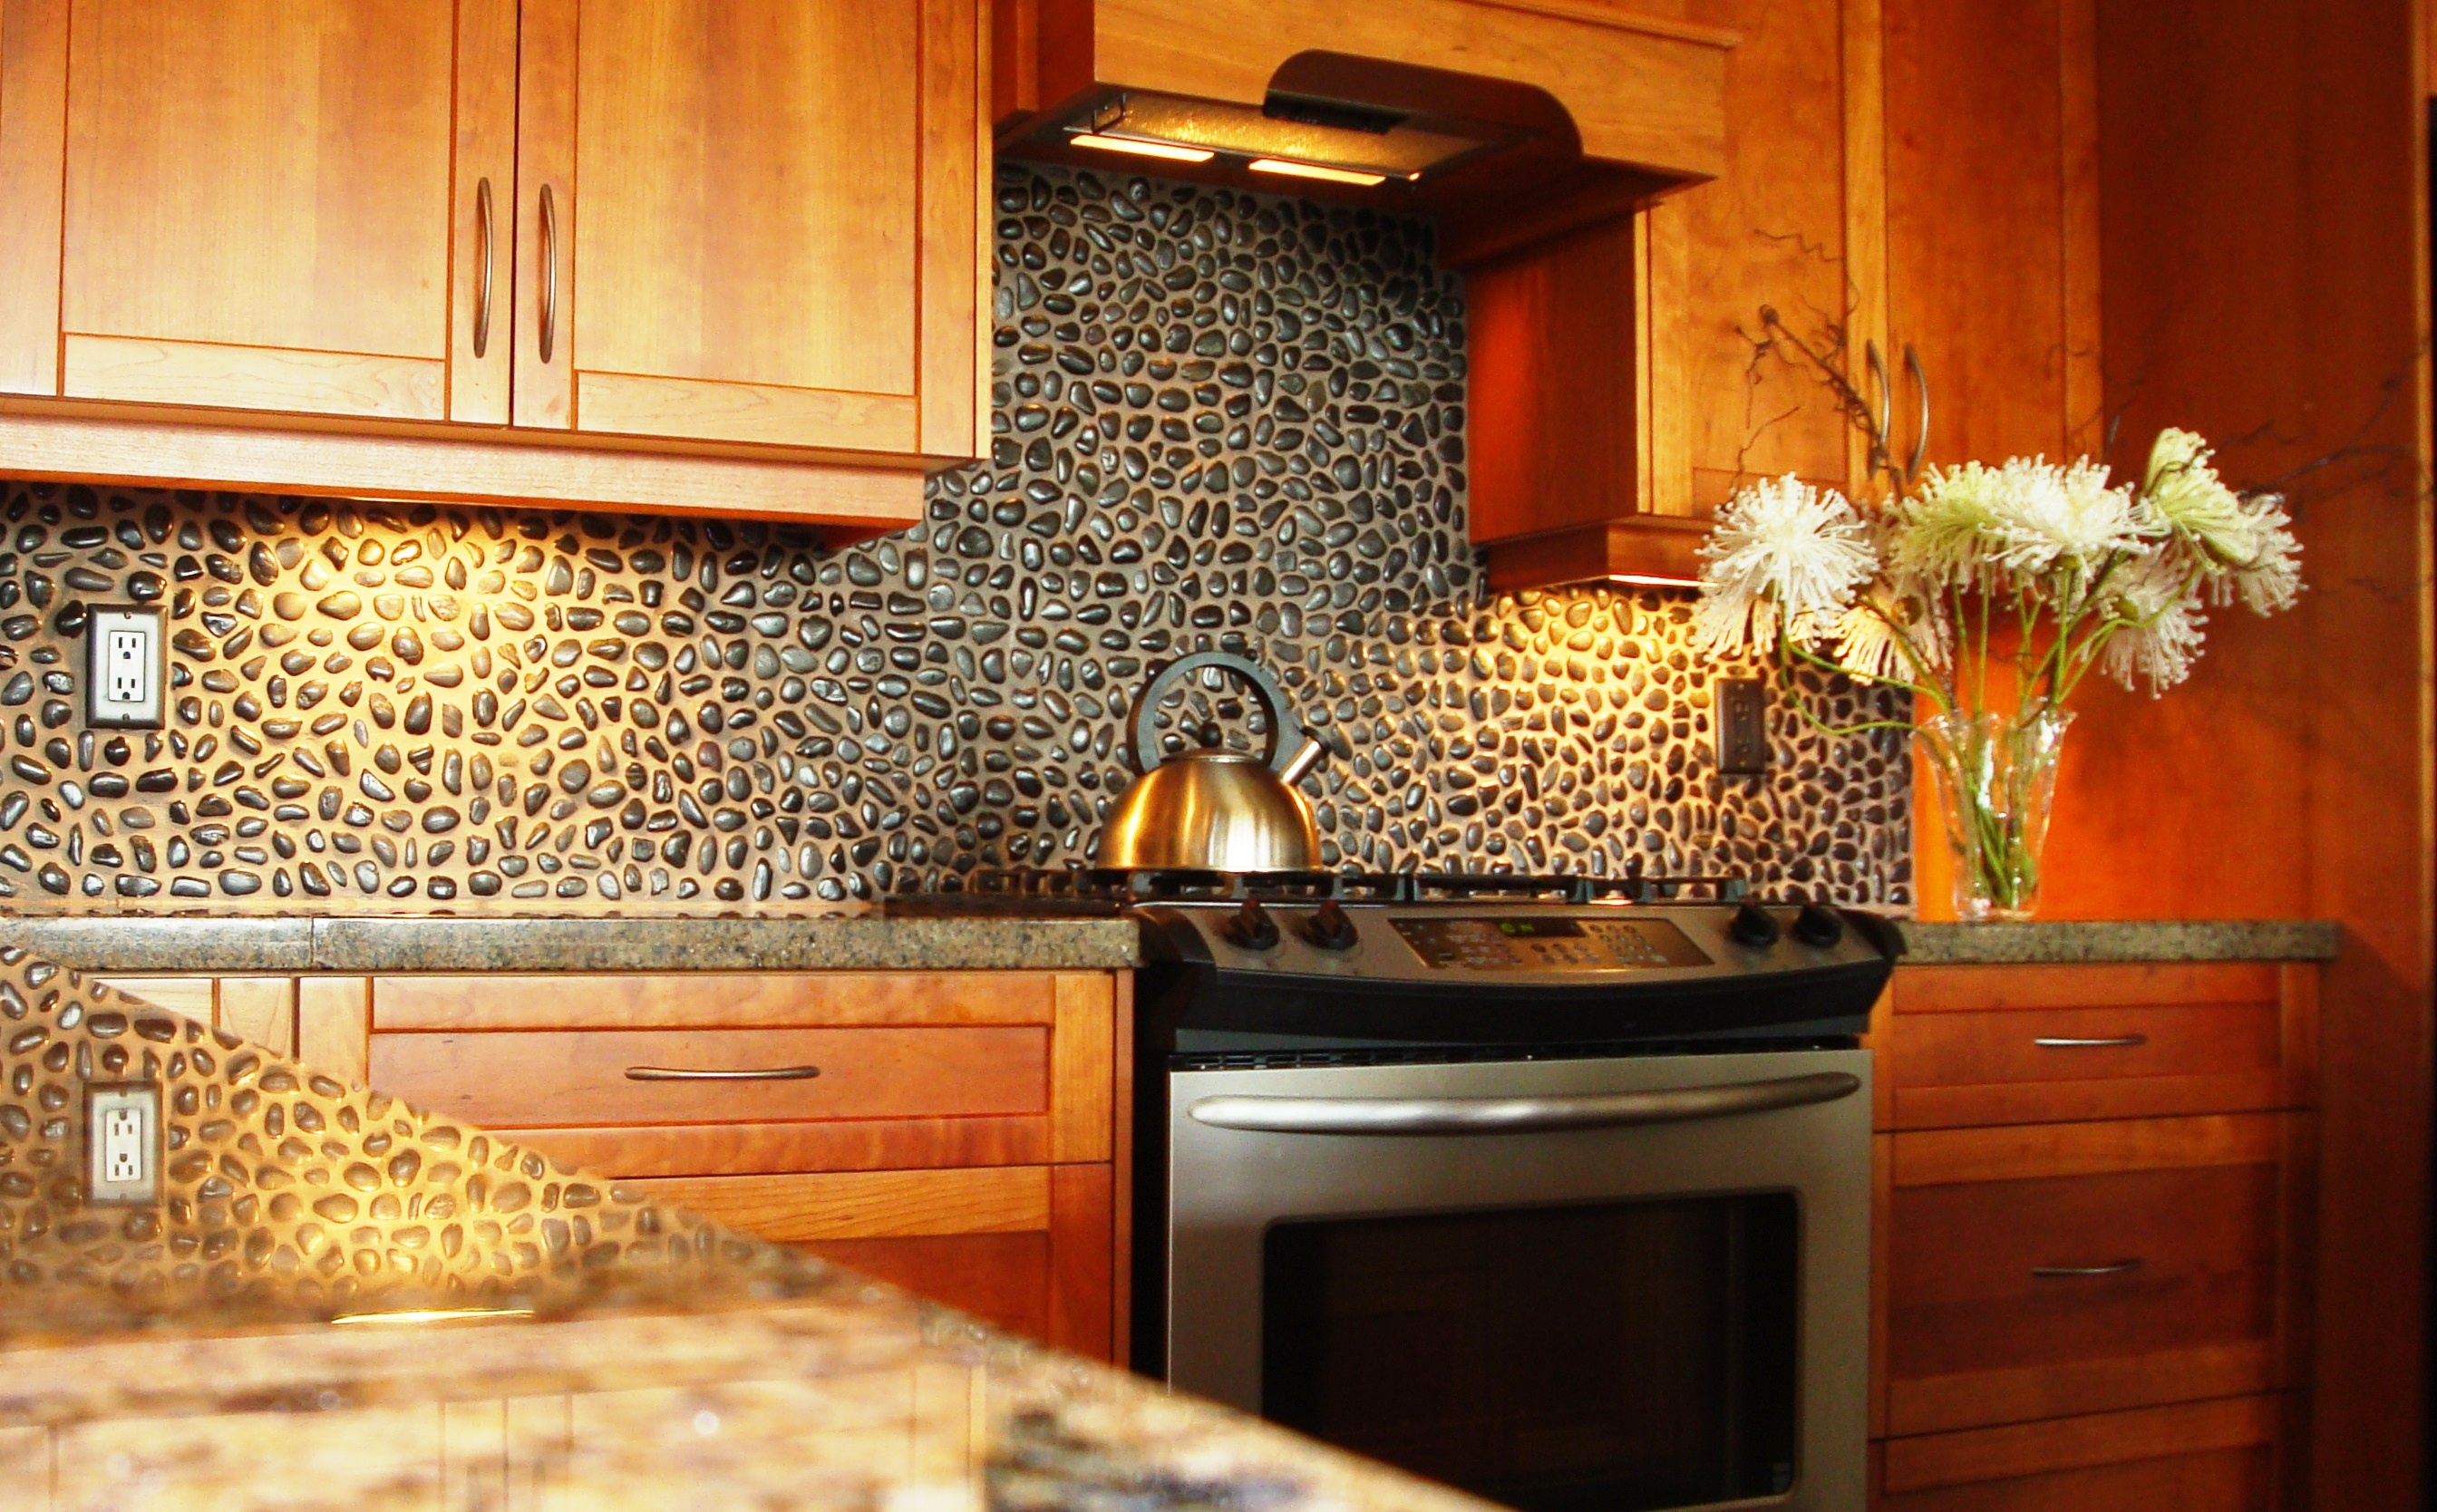 3 backsplashes for kitchen Small Stone Backsplash